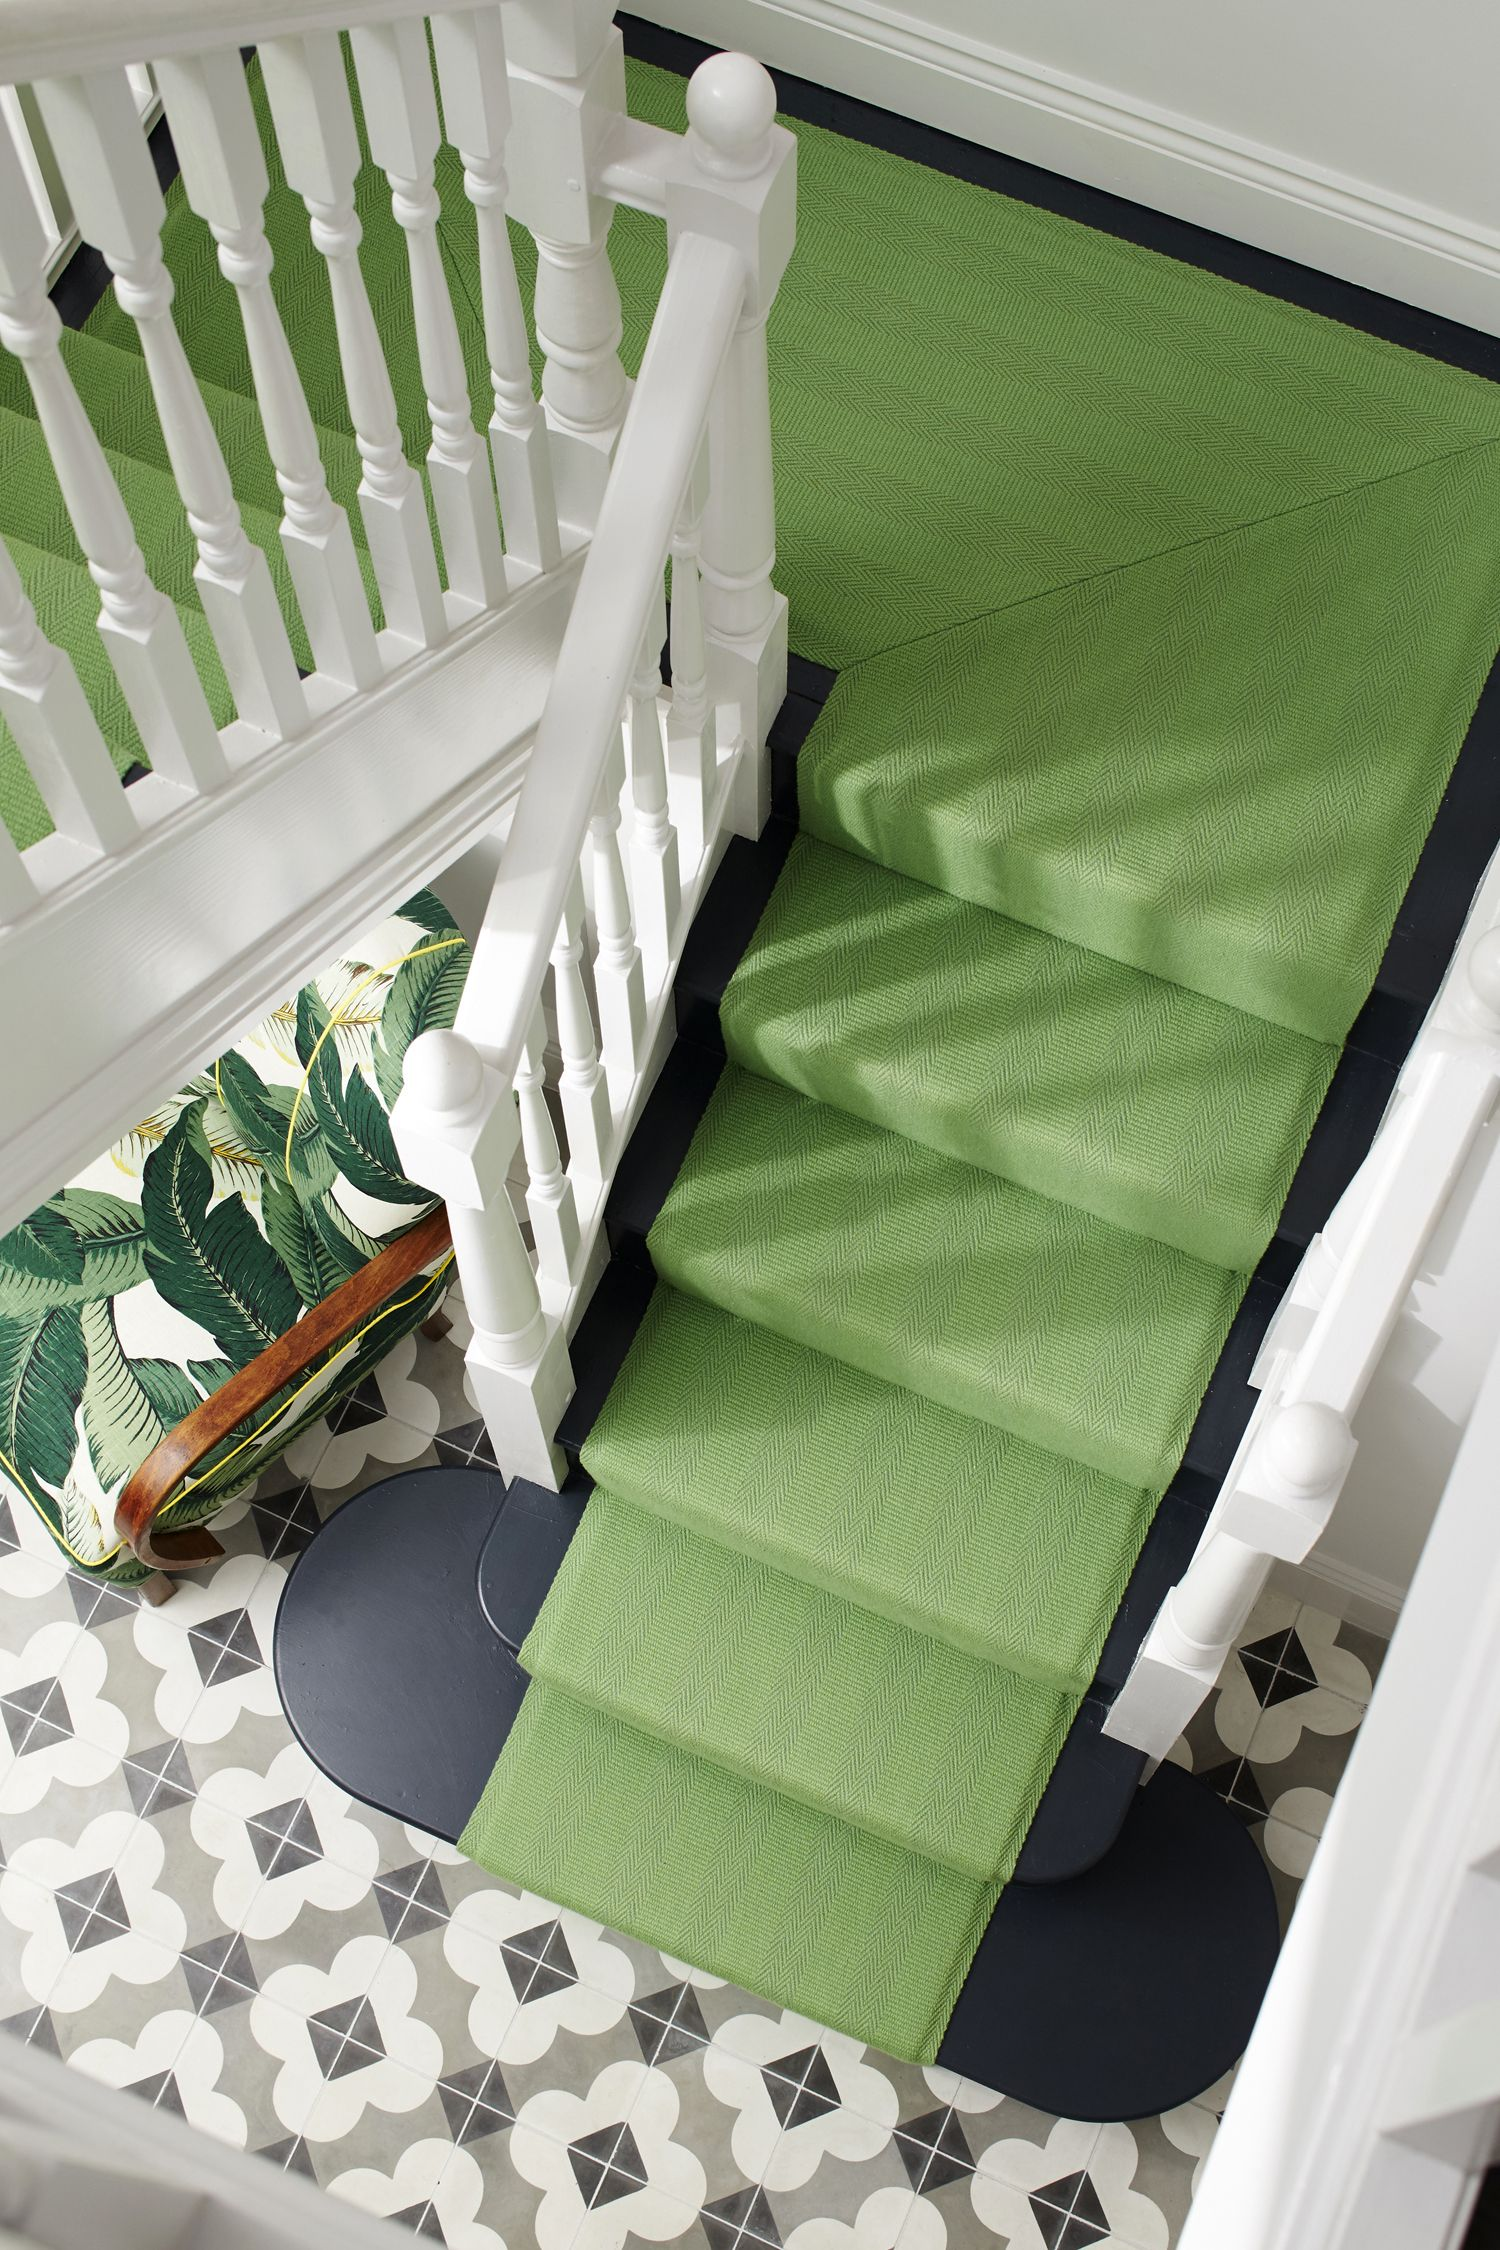 Best Tiles Green Stair Runner And Banana Palm Chair In The 640 x 480